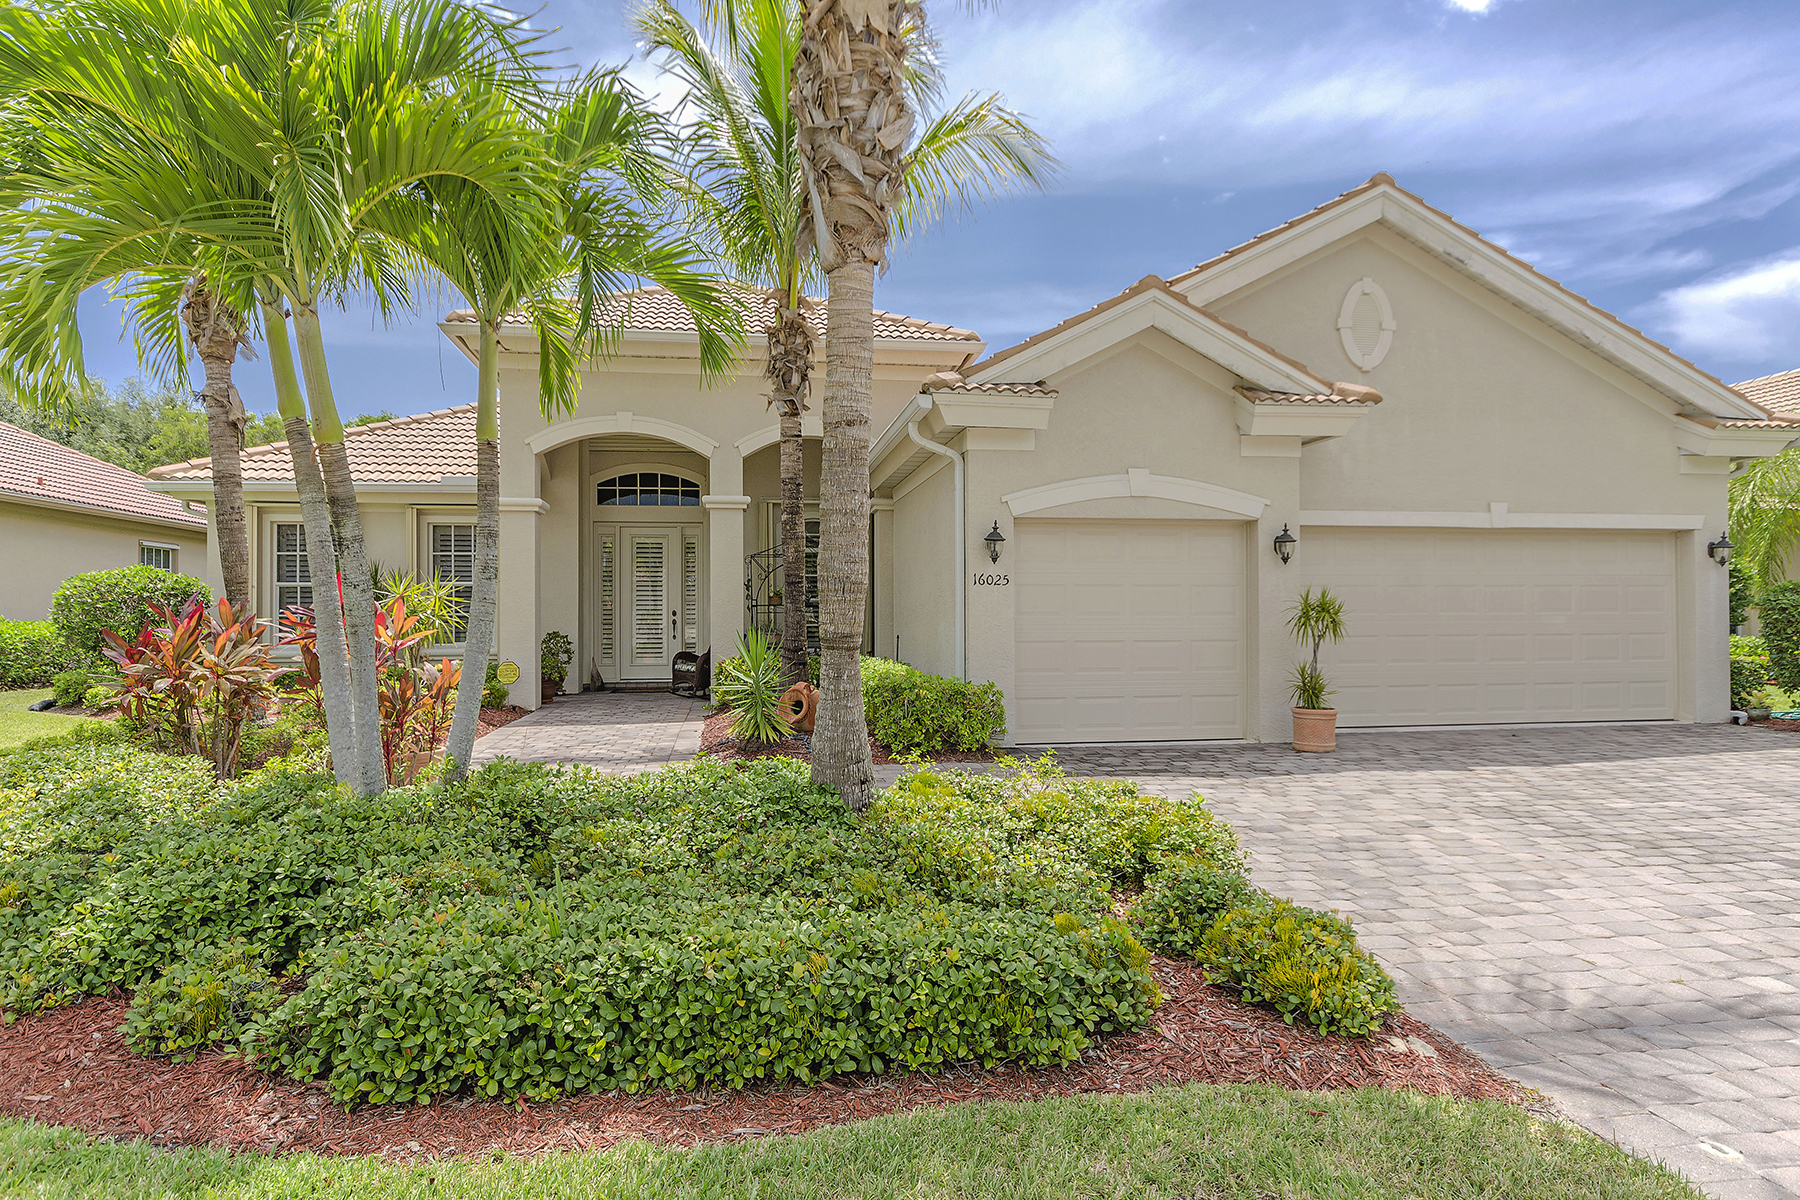 Single Family Home for Sale at 16025 Delarosa Ln , Naples, FL 34110 16025 Delarosa Ln Naples, Florida 34110 United States